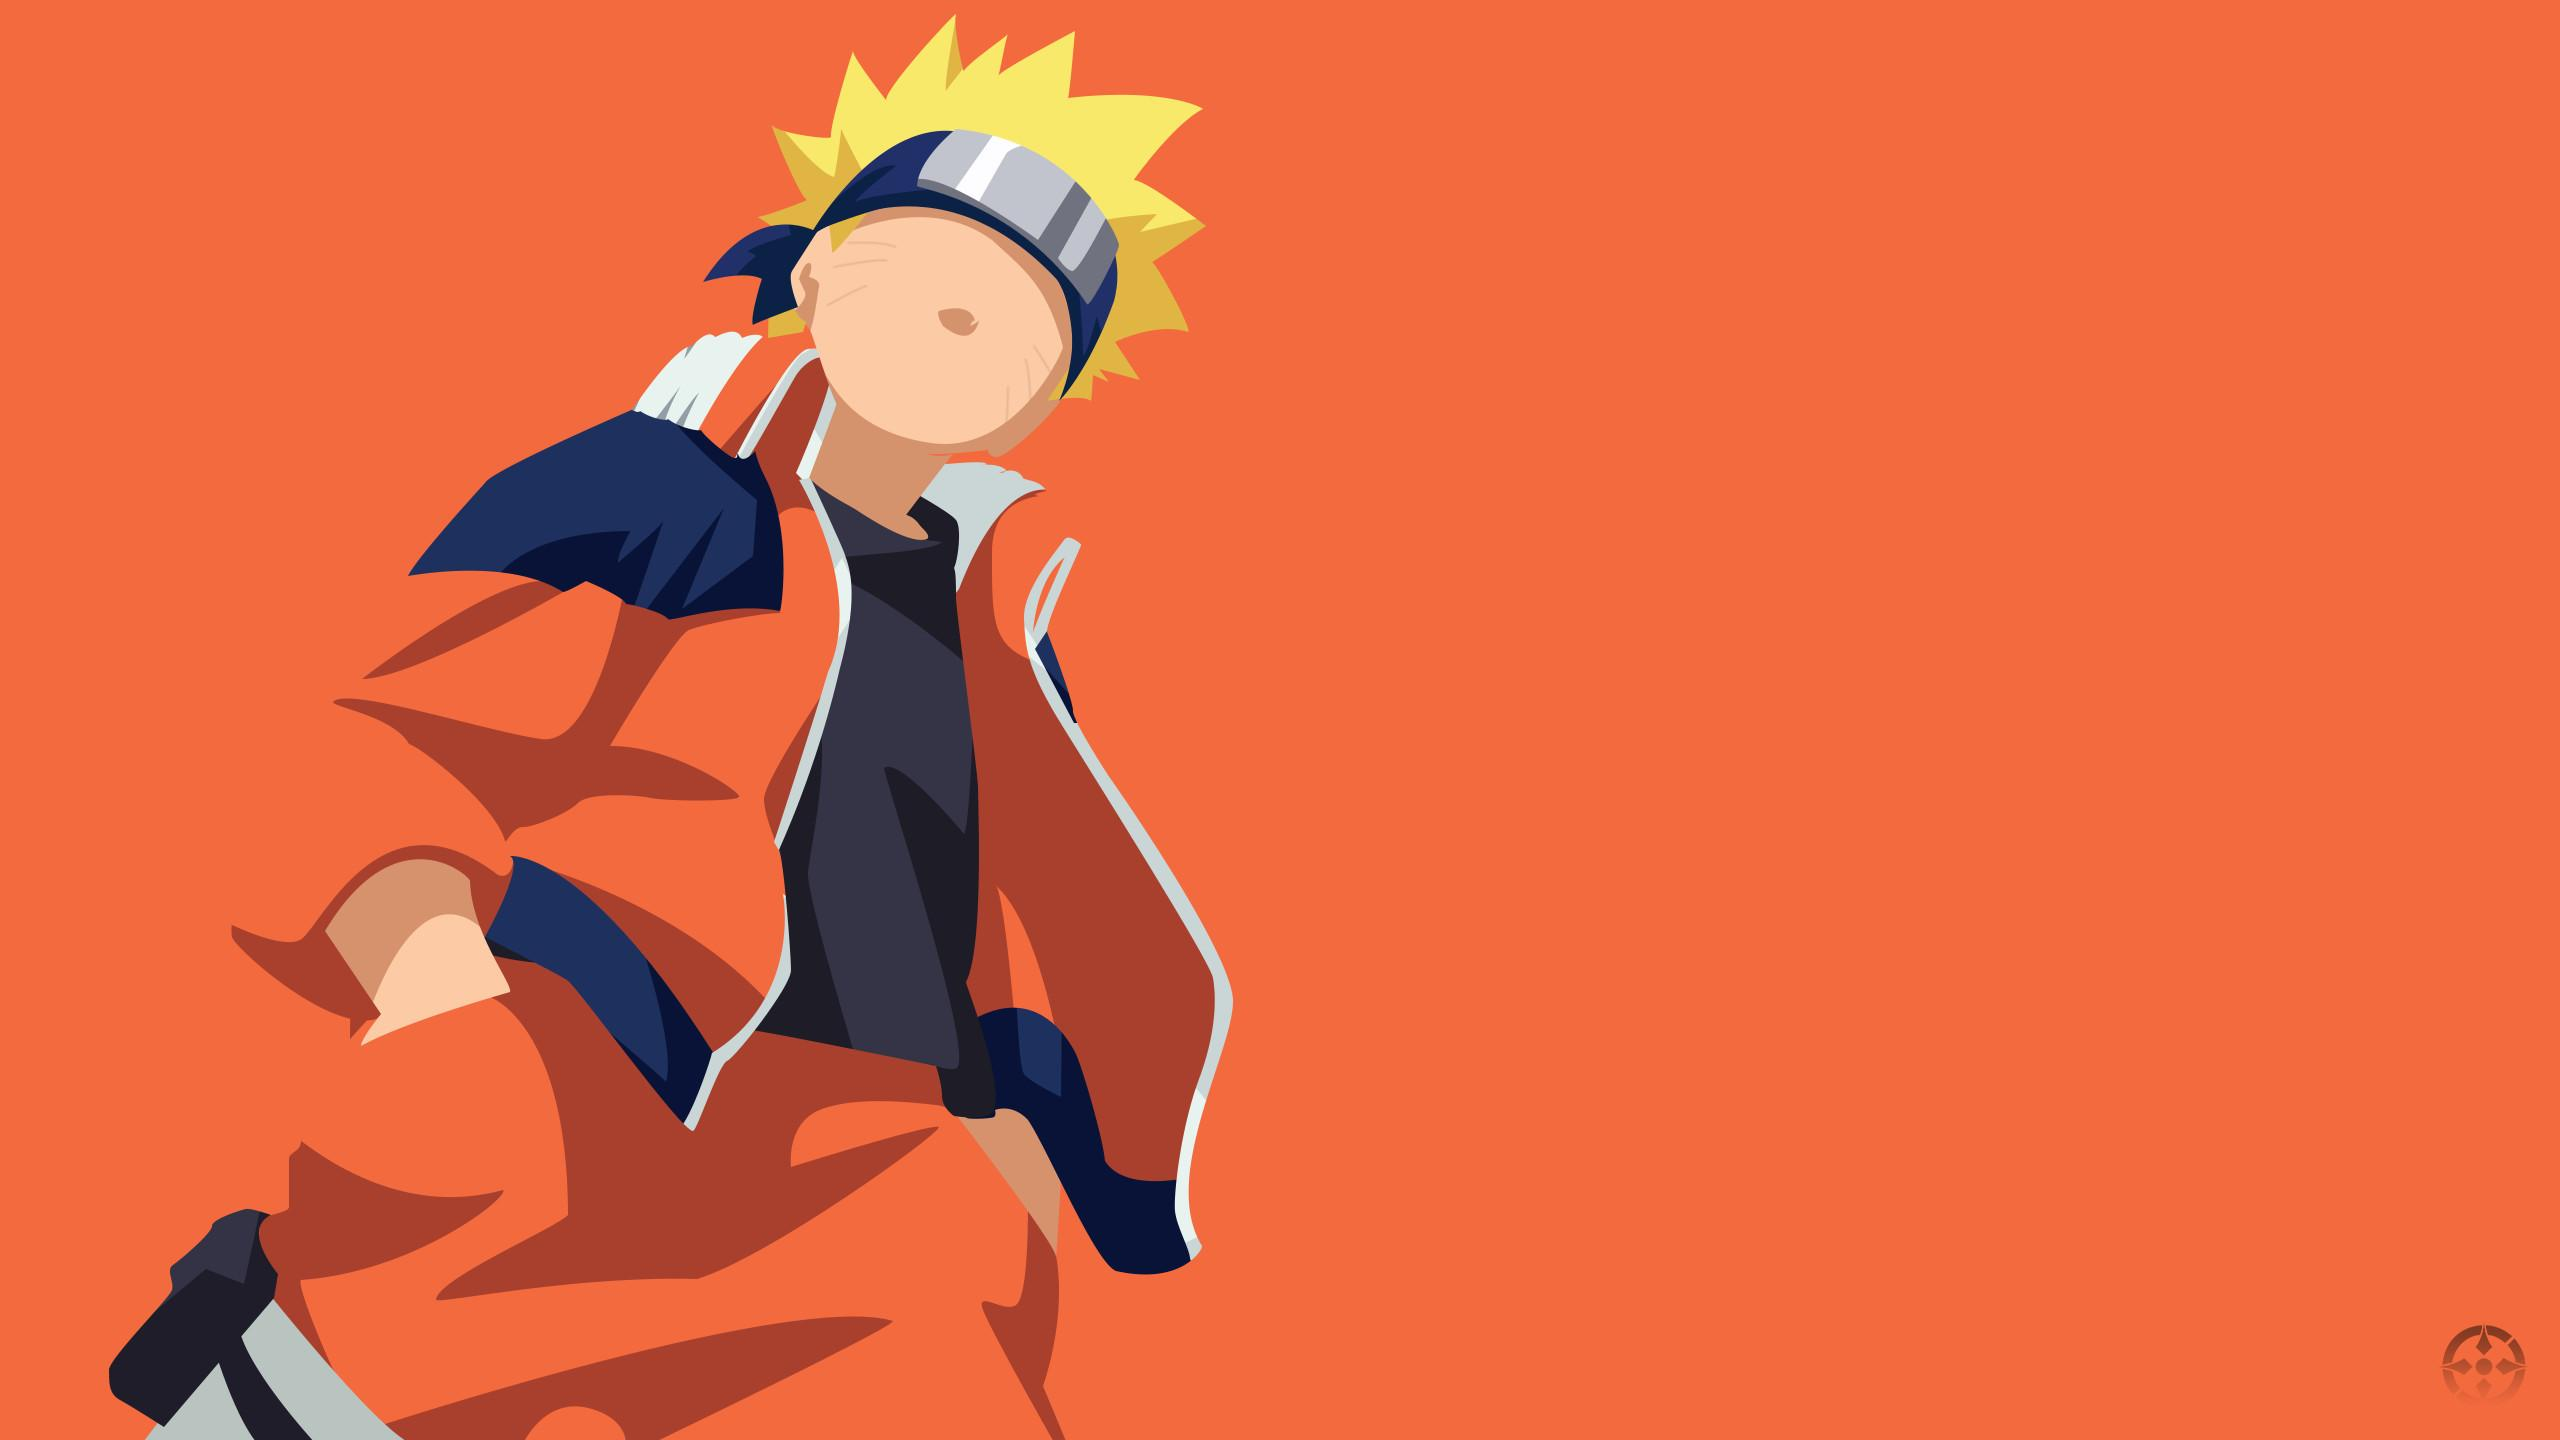 Naruto Aesthetic Pc Wallpapers Wallpaper Cave